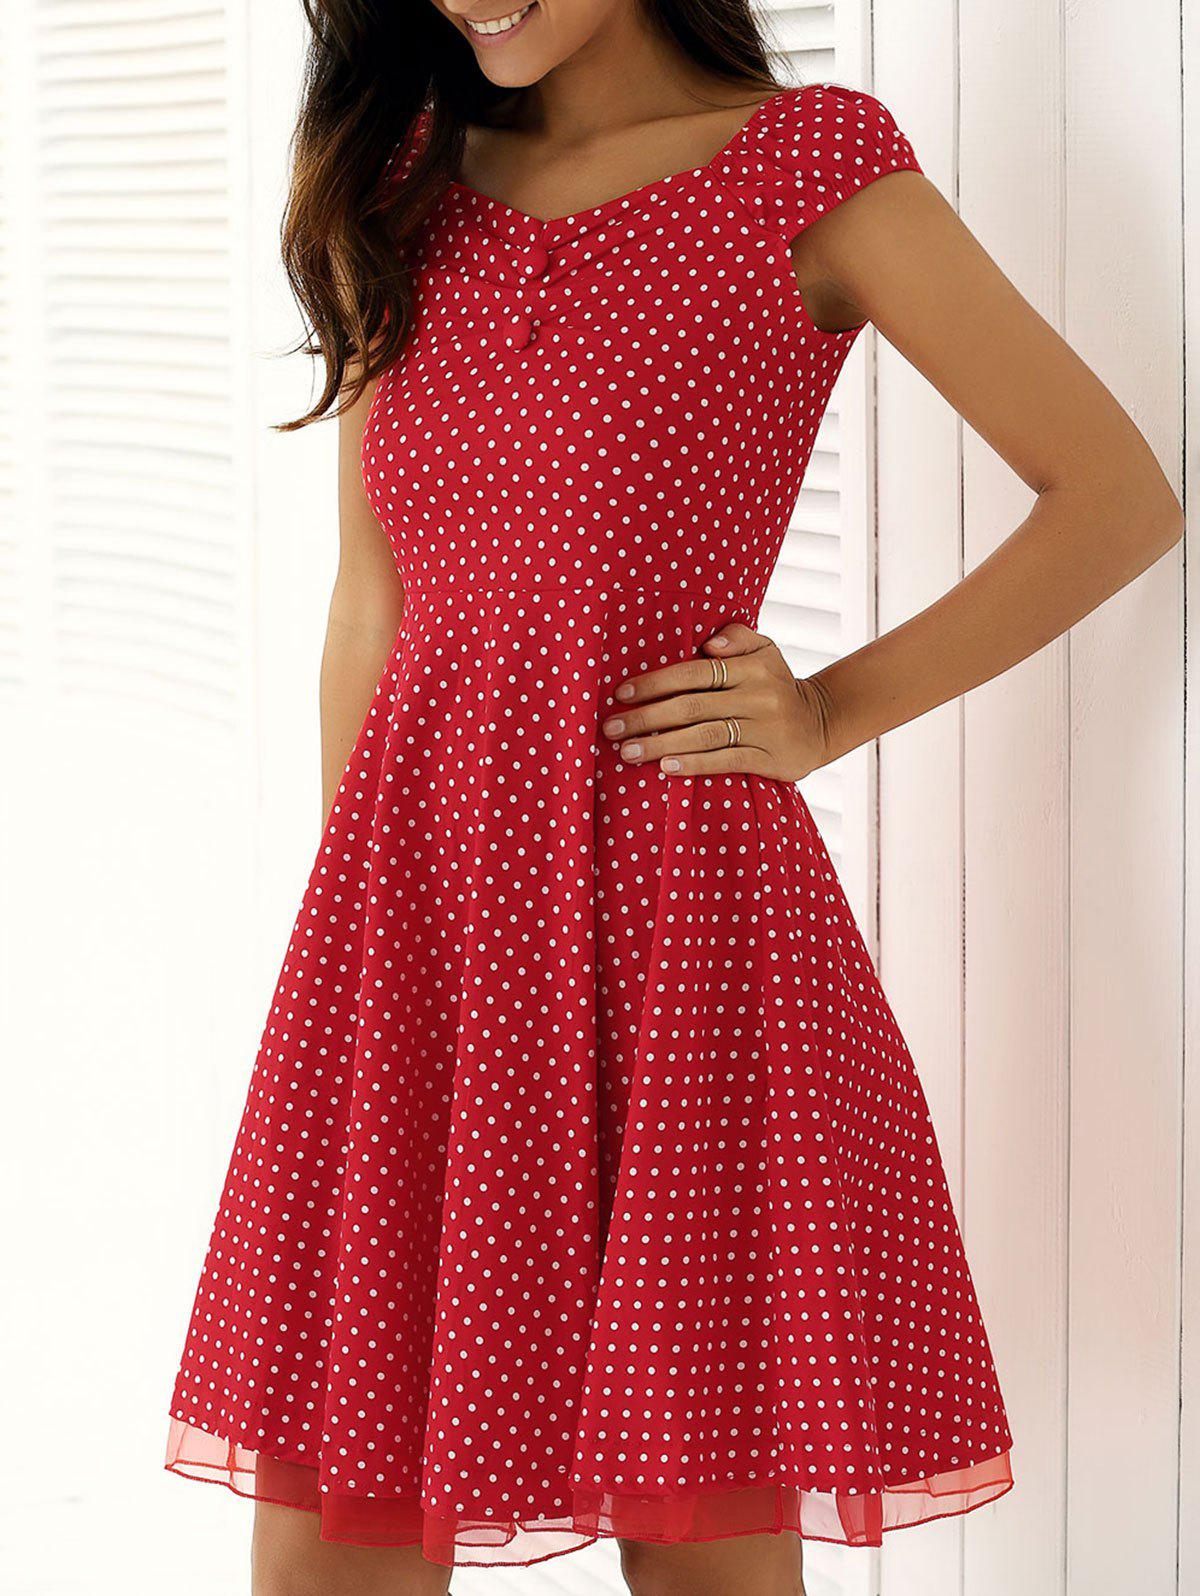 Chic Vintage Spliced Buttoned Polka Dot Swing Dress